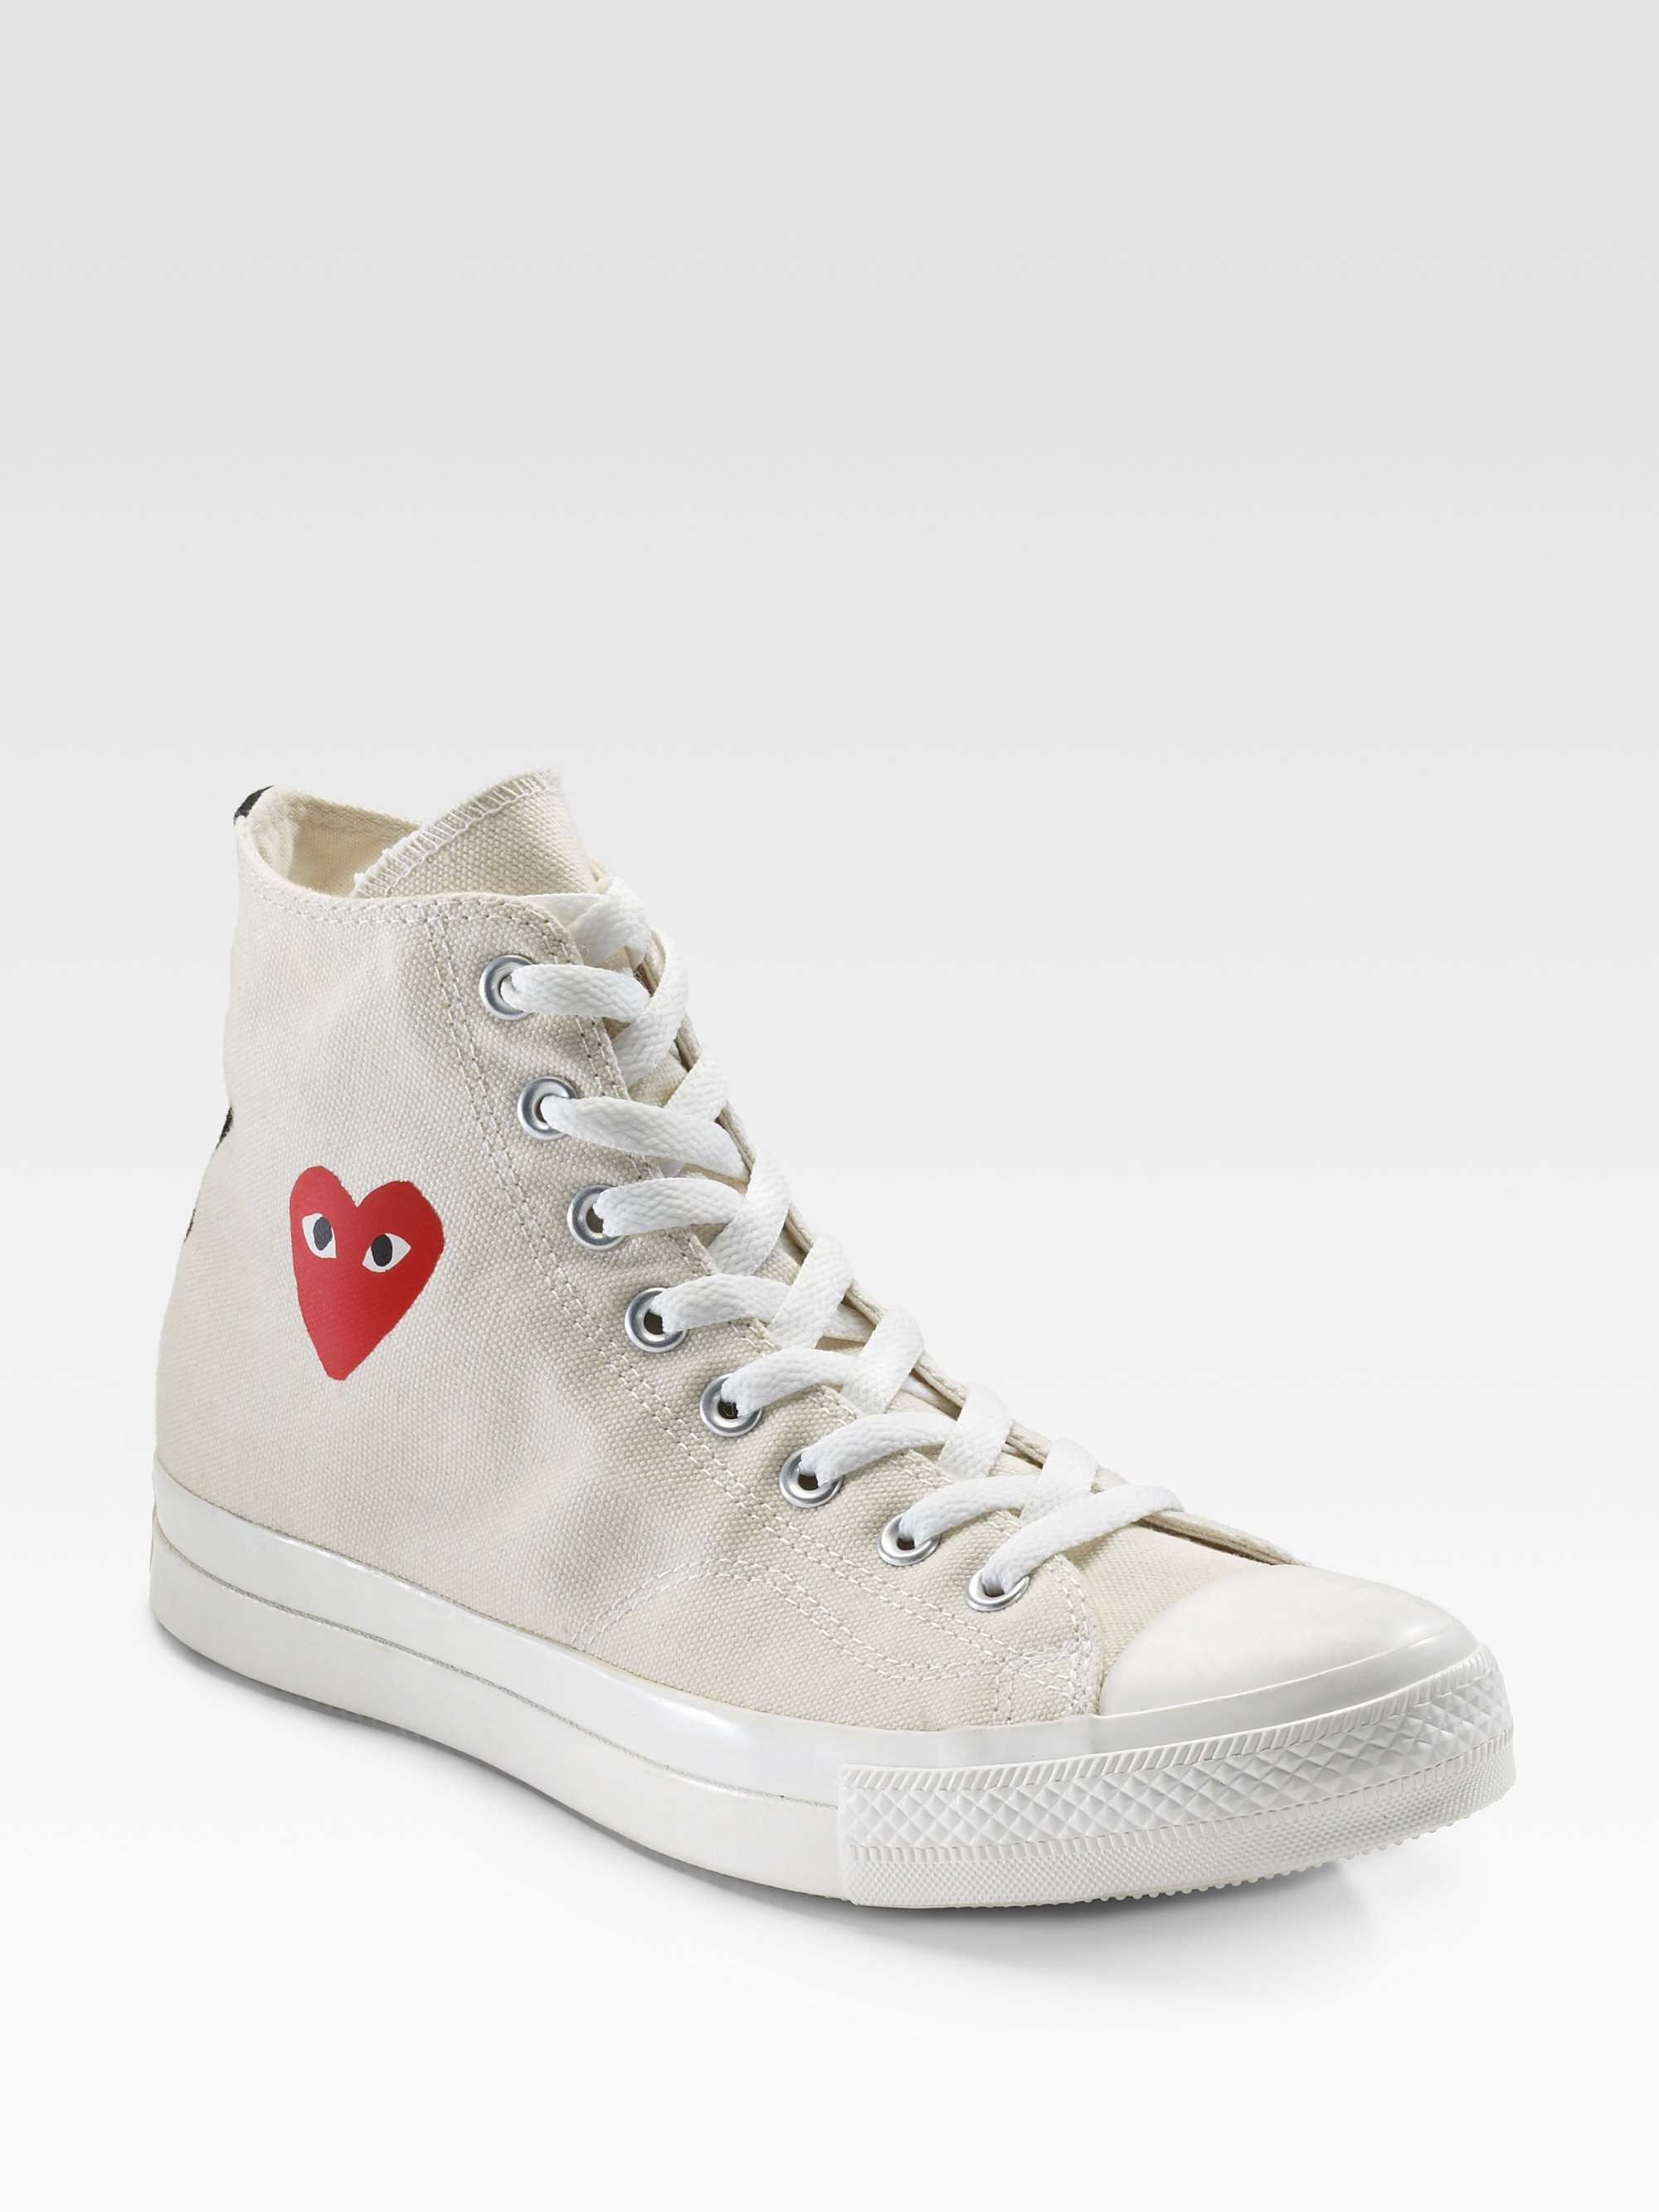 Converse Sneakers All Star Chuck Taylor Men Size Red Hi Top Canvas Shoes M See more like this Converse All Star Looney Tunes White Canvas Hi Top Shoes Men's Size 4 Women's 6 Pre-Owned · Converse · US Shoe Size (Men's):4 · Chuck Taylor All Star.